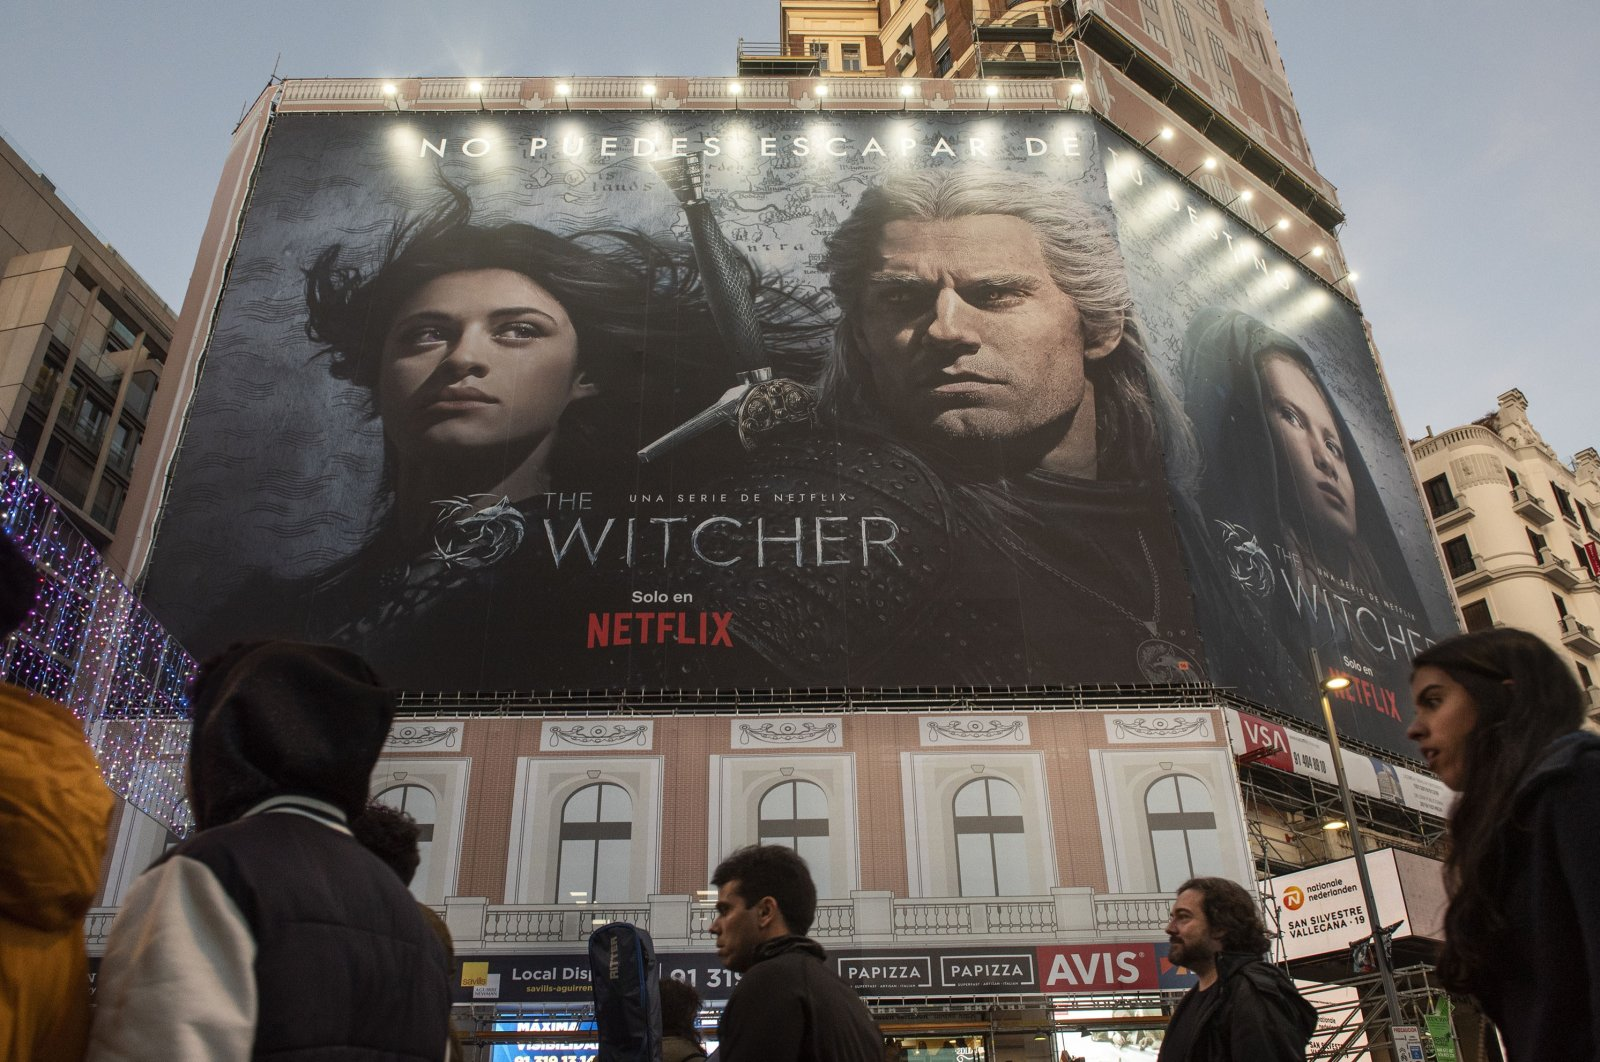 """An advertisement for the streaming Netflix's TV series """"The Witcher,"""" can be seen on the side of a building, in Spain, Jan. 9, 2020. (Getty Images)"""